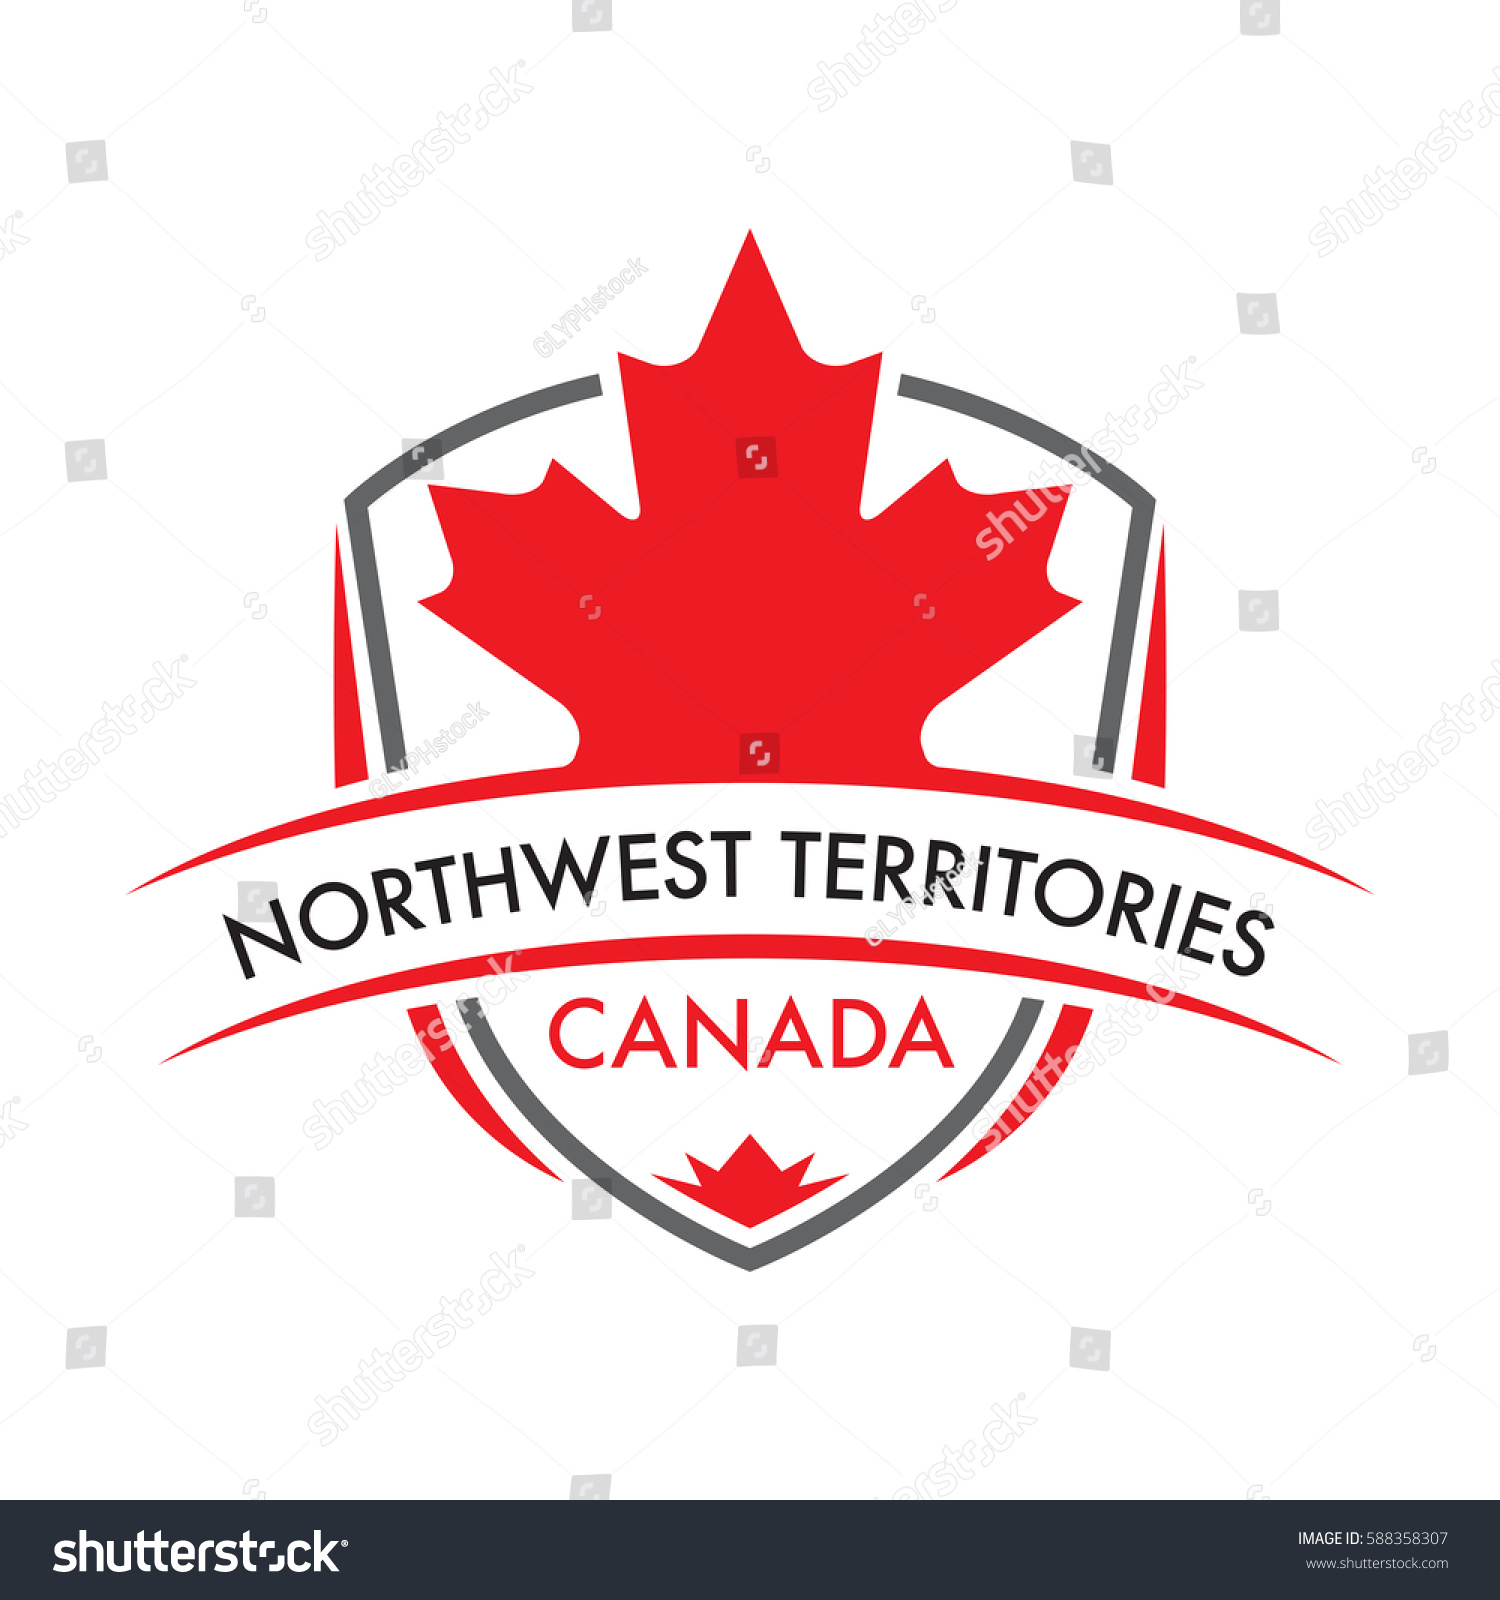 Canadian territory crest vector format featuring stock vector a canadian territory crest in vector format featuring a large maple leaf and text that reads biocorpaavc Choice Image